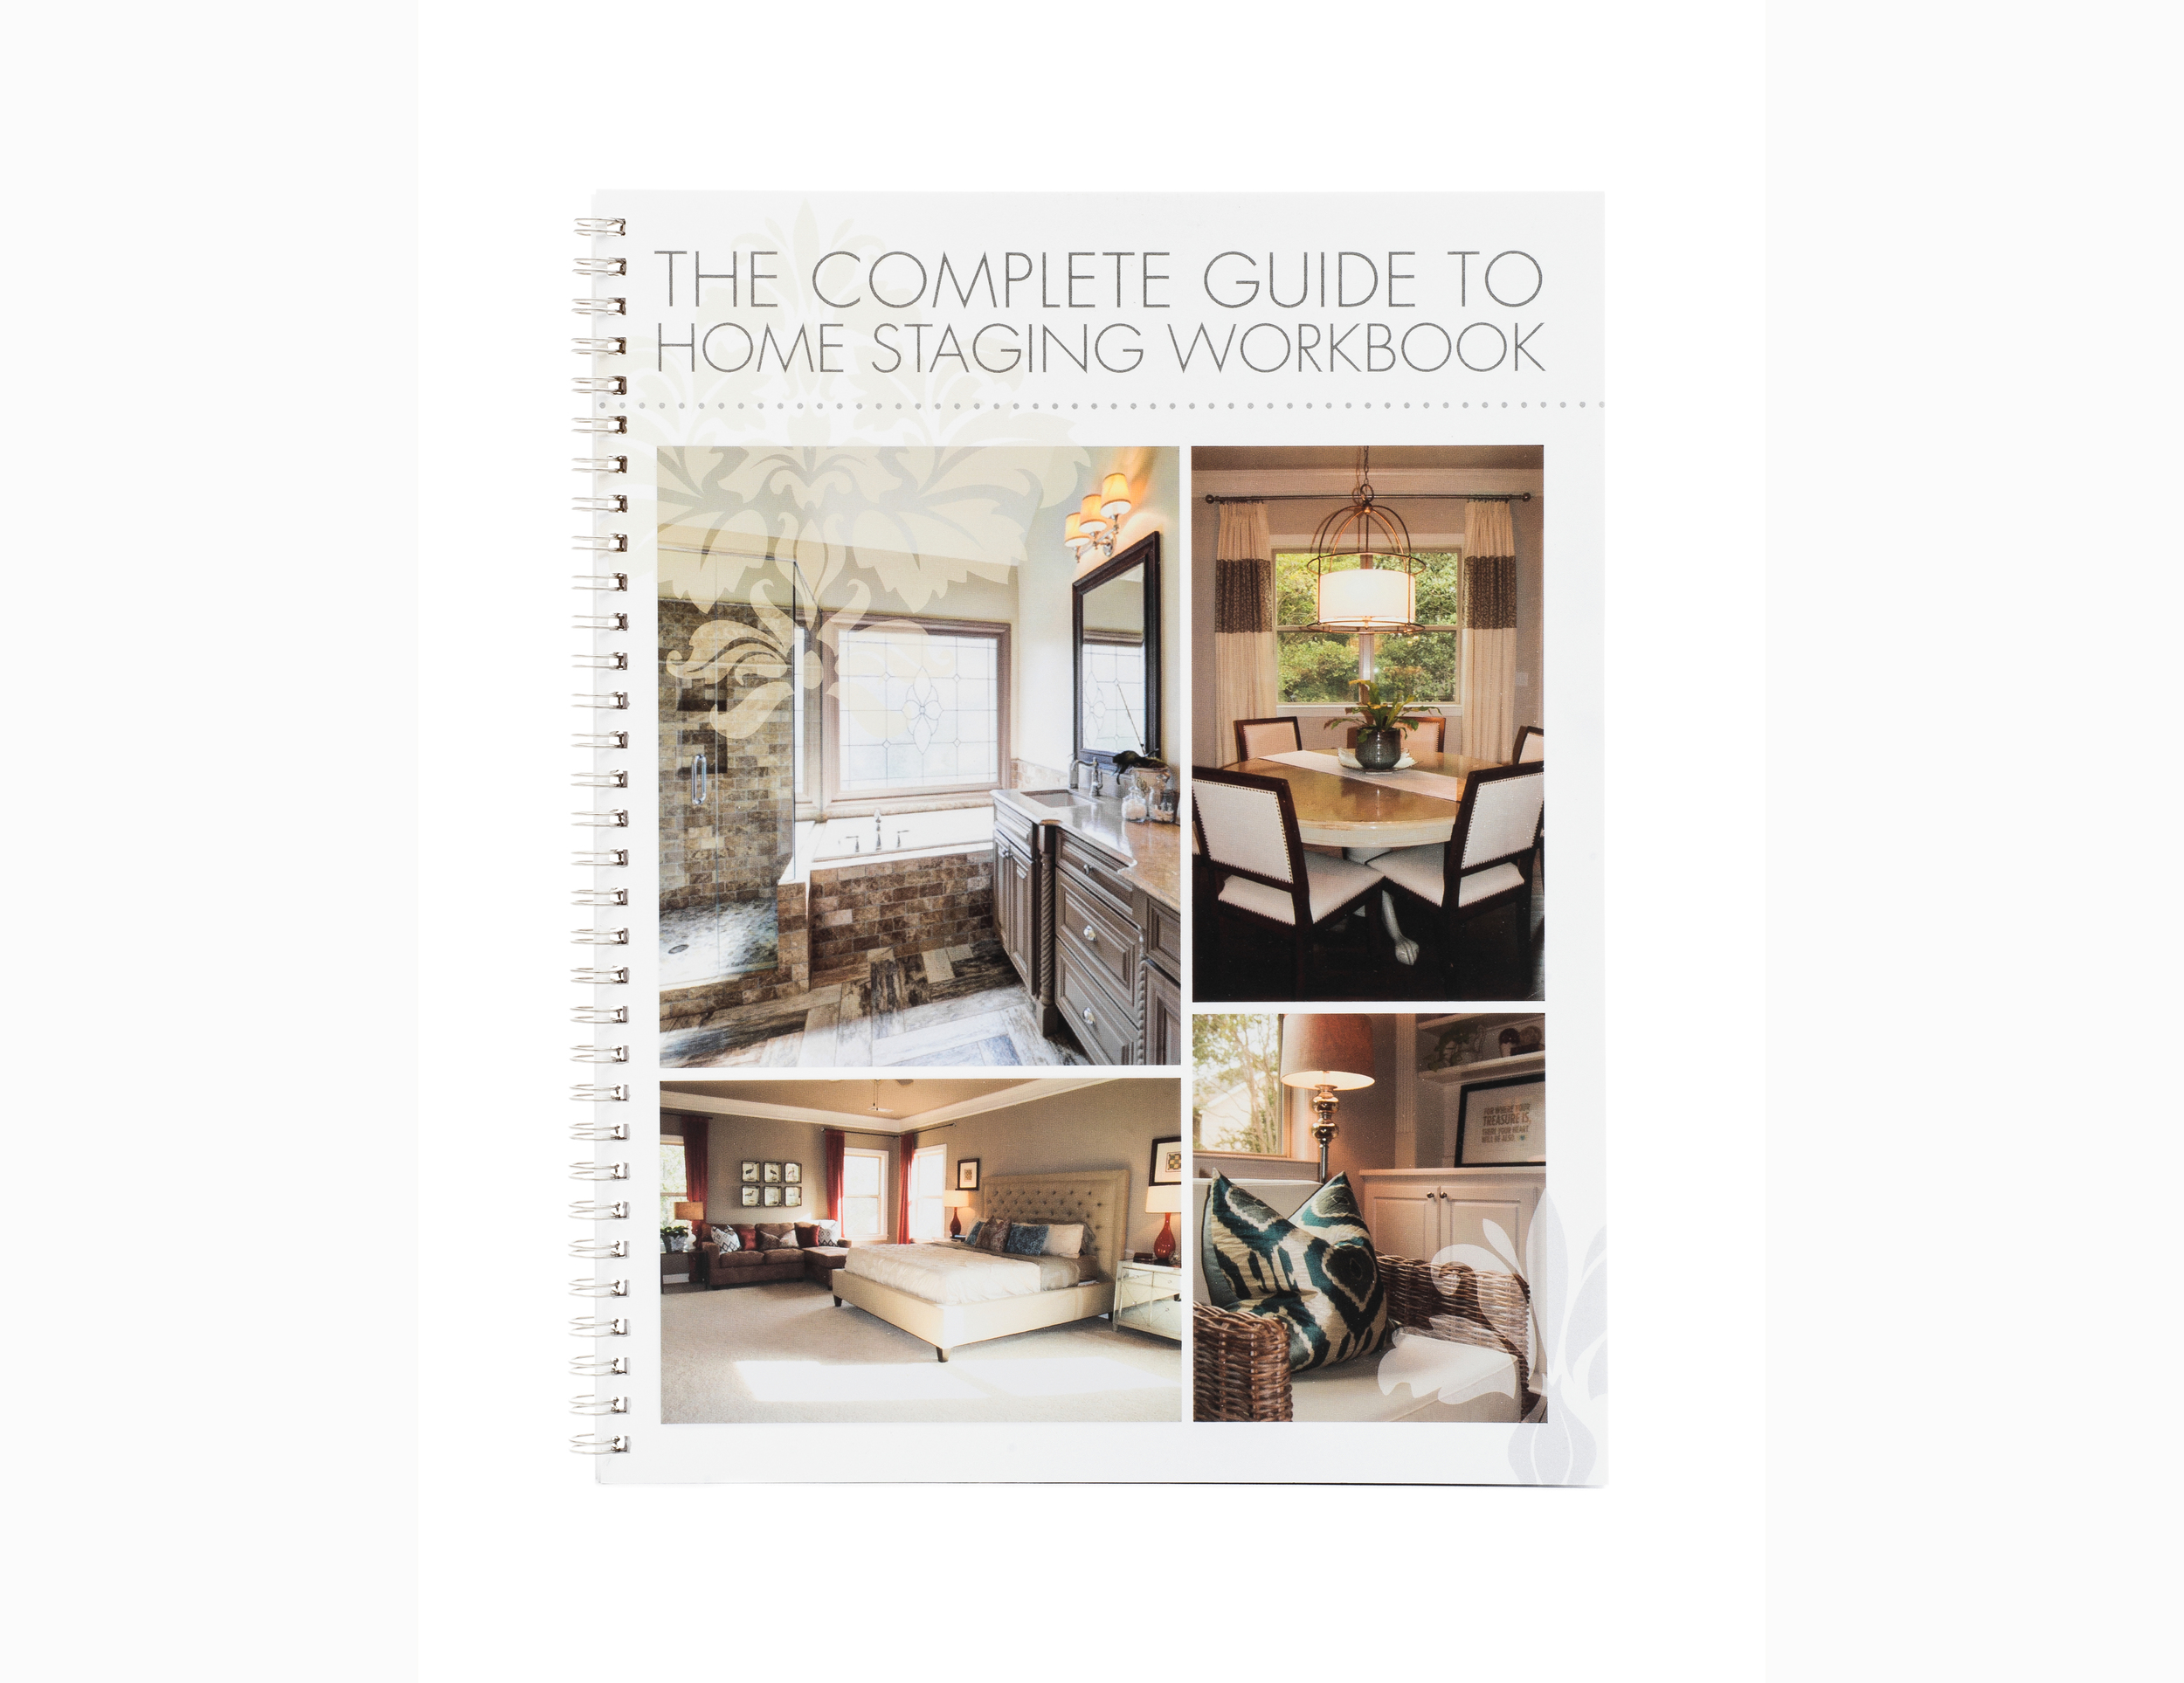 Complete Guide to Home Staging